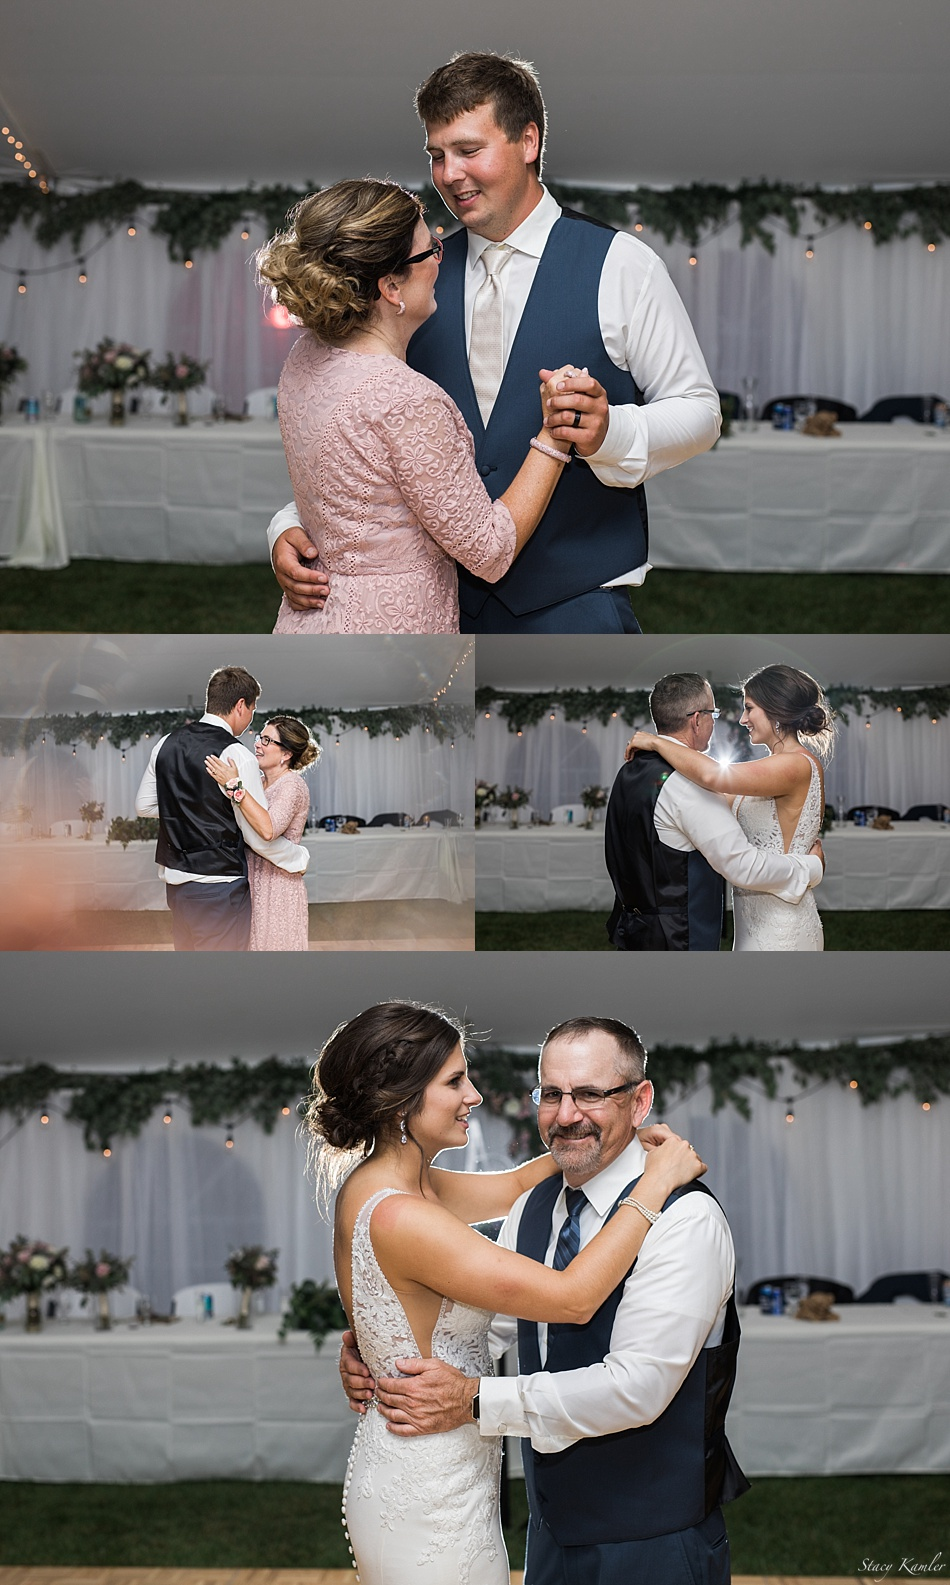 Mother/Son and Father/Daughter Dances